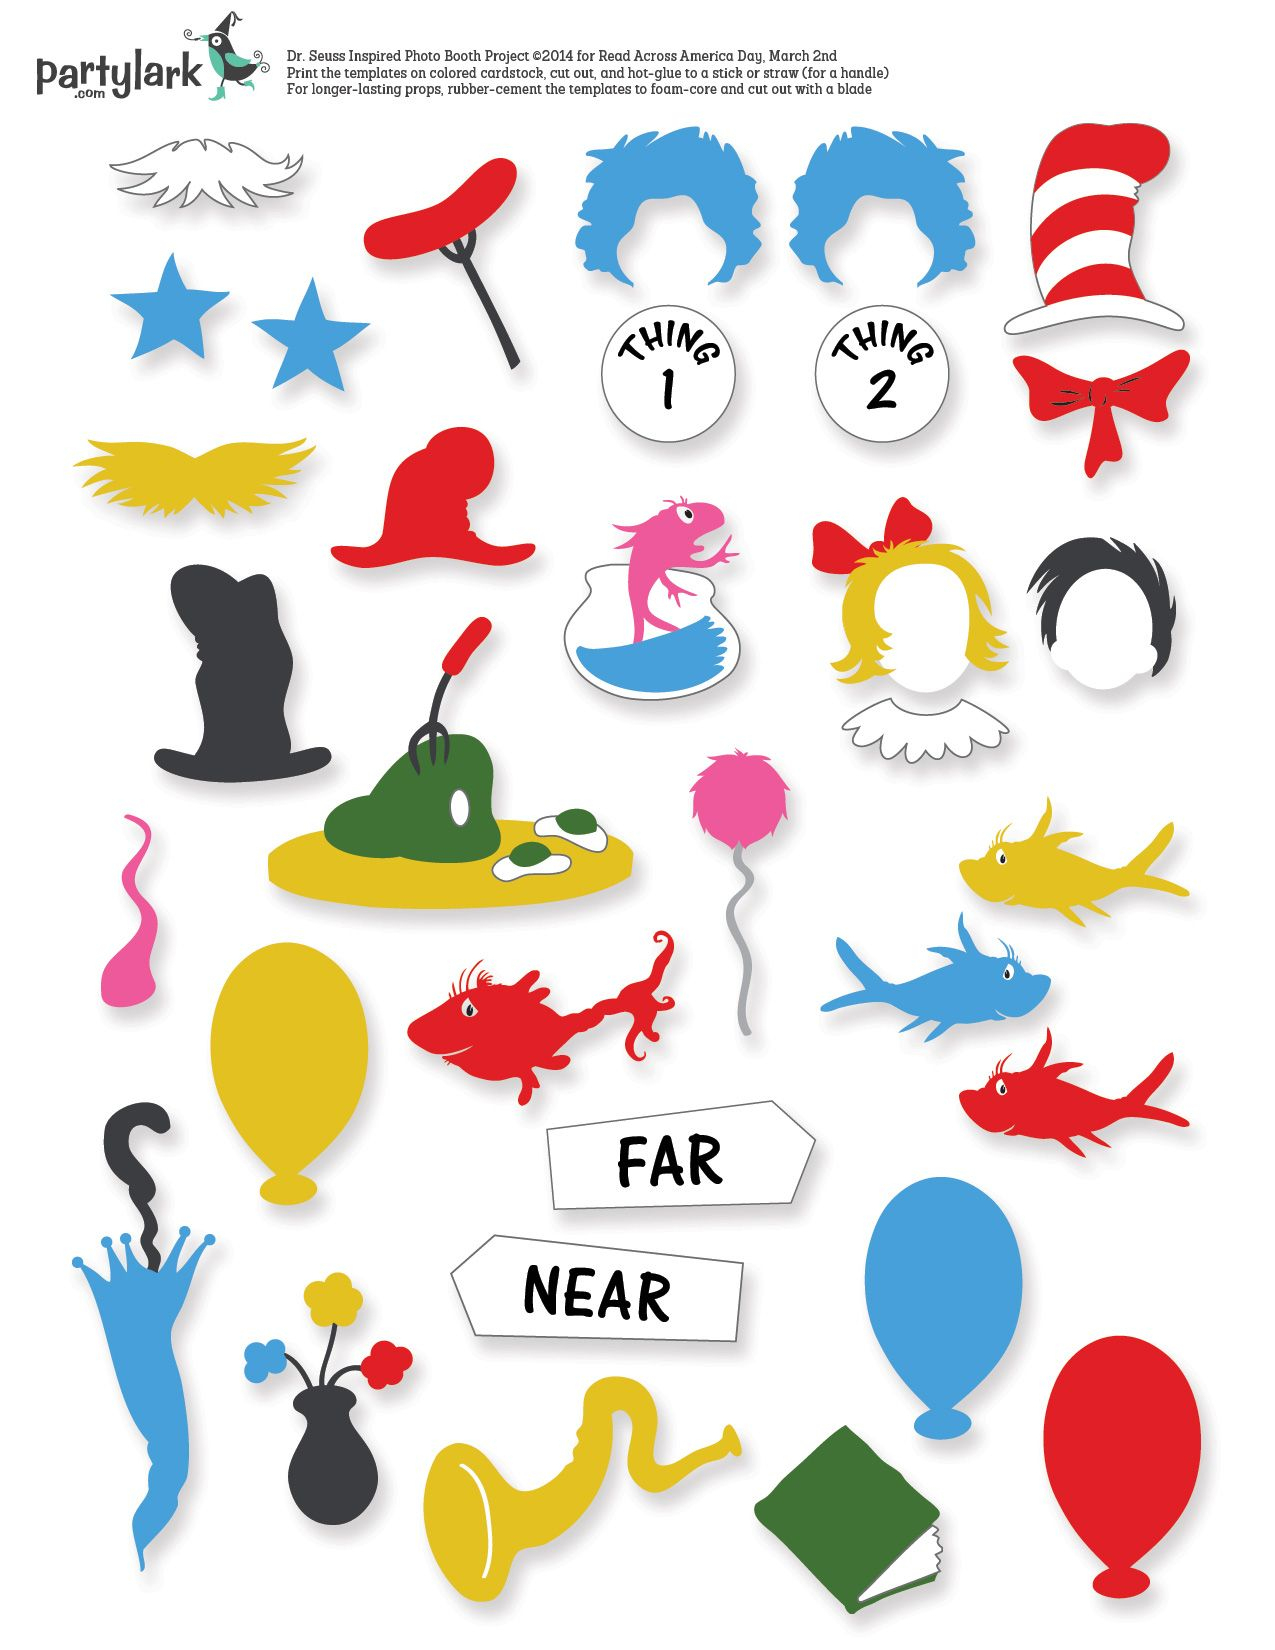 Pinparty Lark On Partytime March: Kiddos & Printables | Dr Seuss - Free Printable Dr Seuss Photo Props